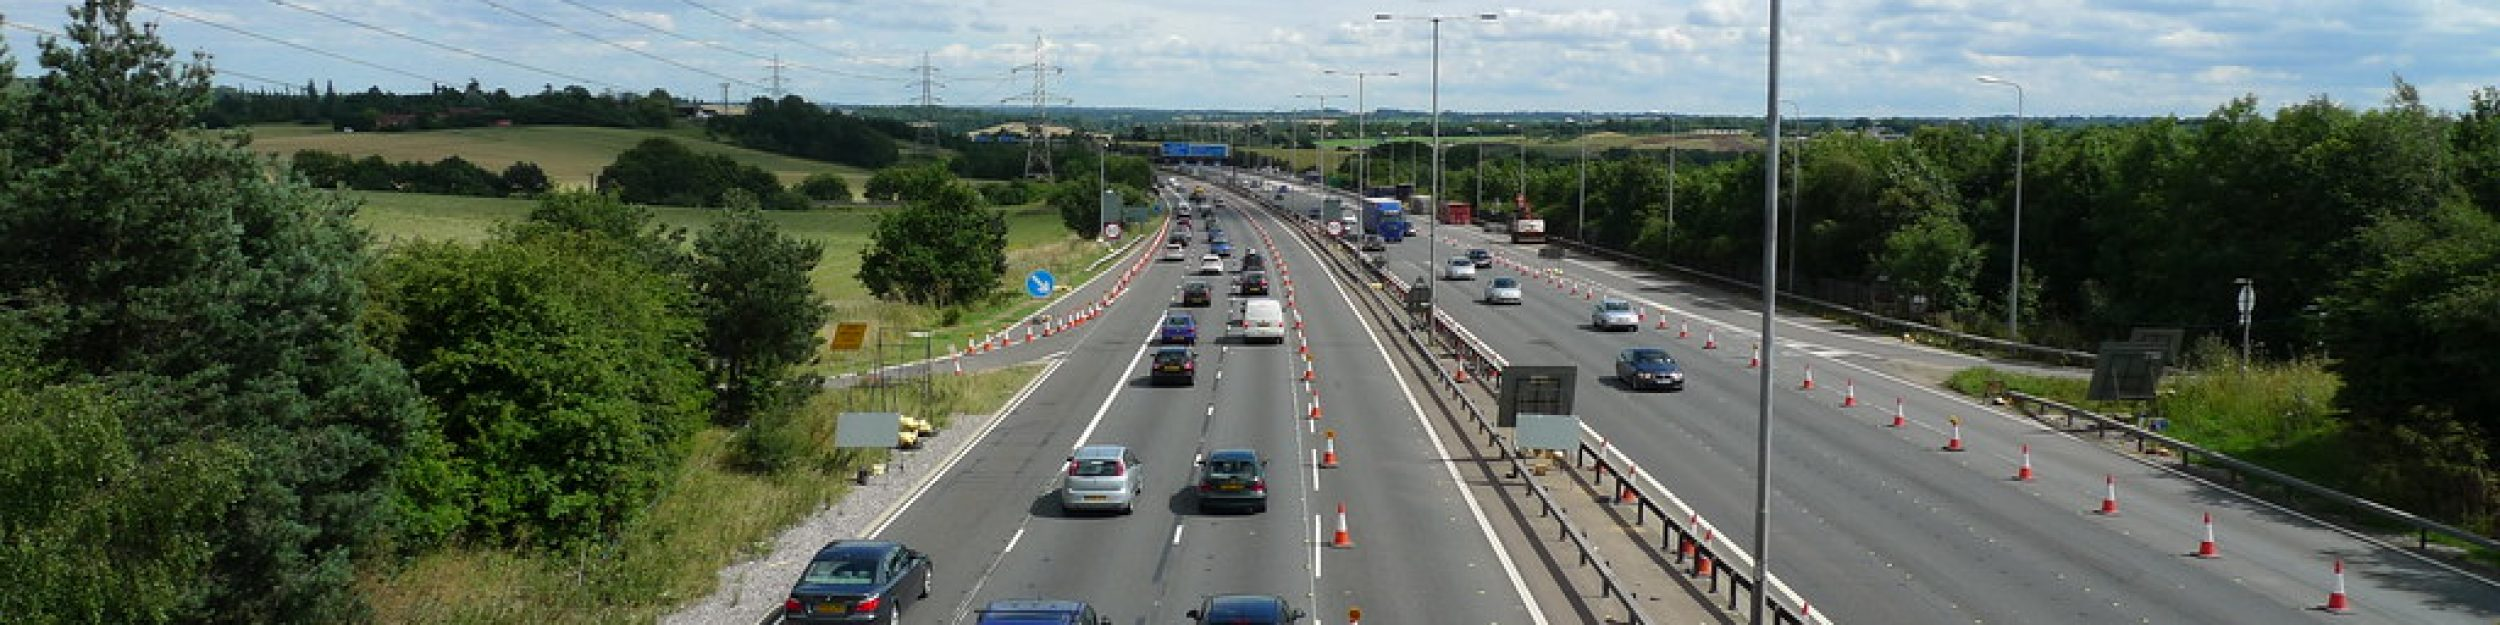 England Highways